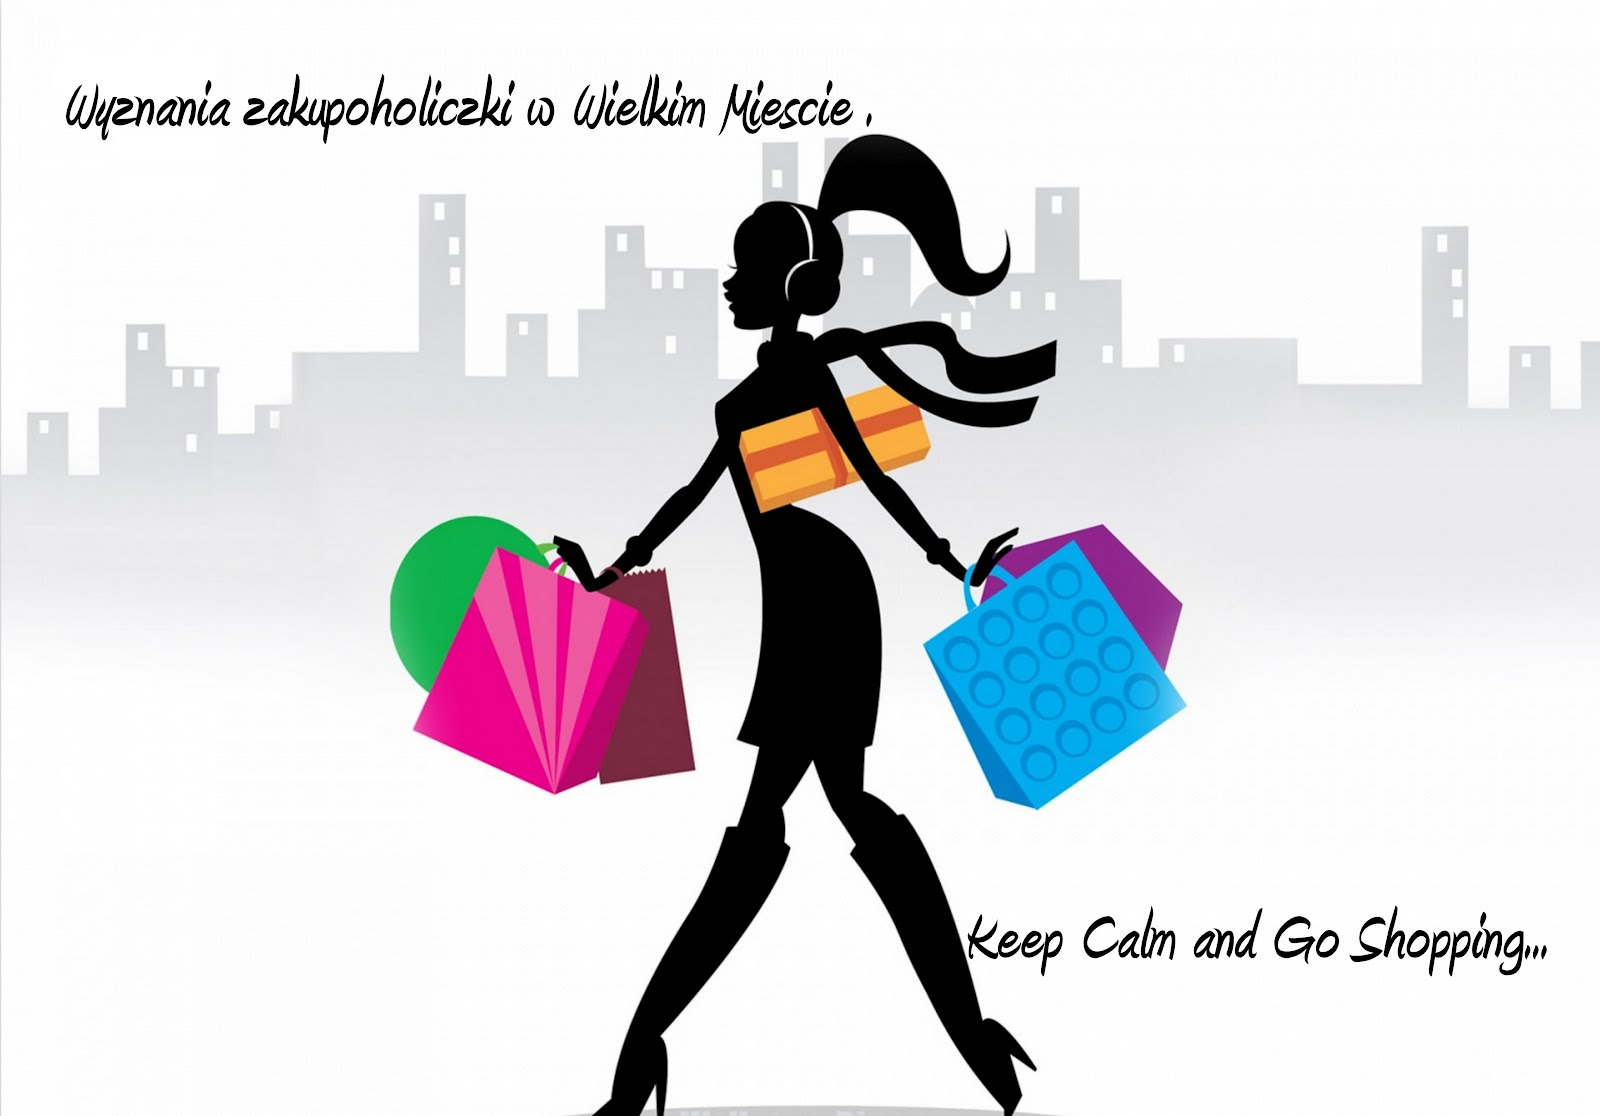 keep calm and go ... shopping